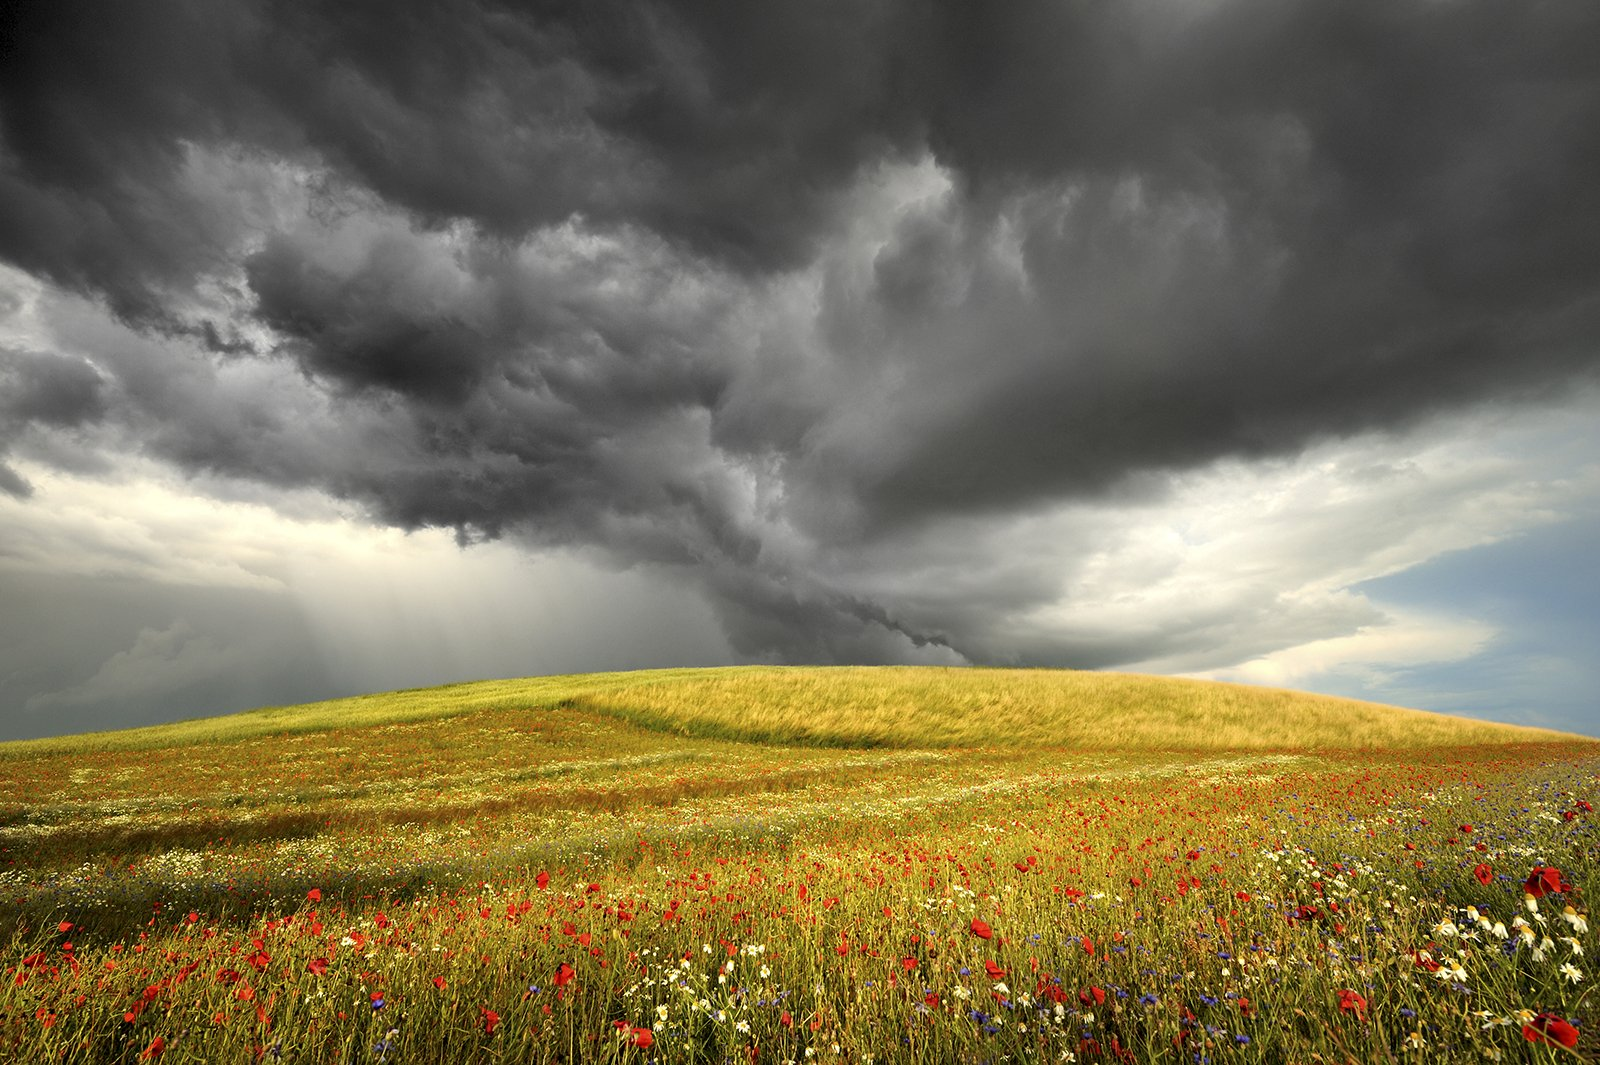 background, blooming, blue, botanical, clouds, cornflowers, dramatically, ears, field, flora, flower, garden, grain, grass, green, grimly, grow, idyllic, landscape, meadow, natural, nature, outdoor, panoramic, papaver, petal, plants, poppy, red, rhoeas, s, Jan Siemiński